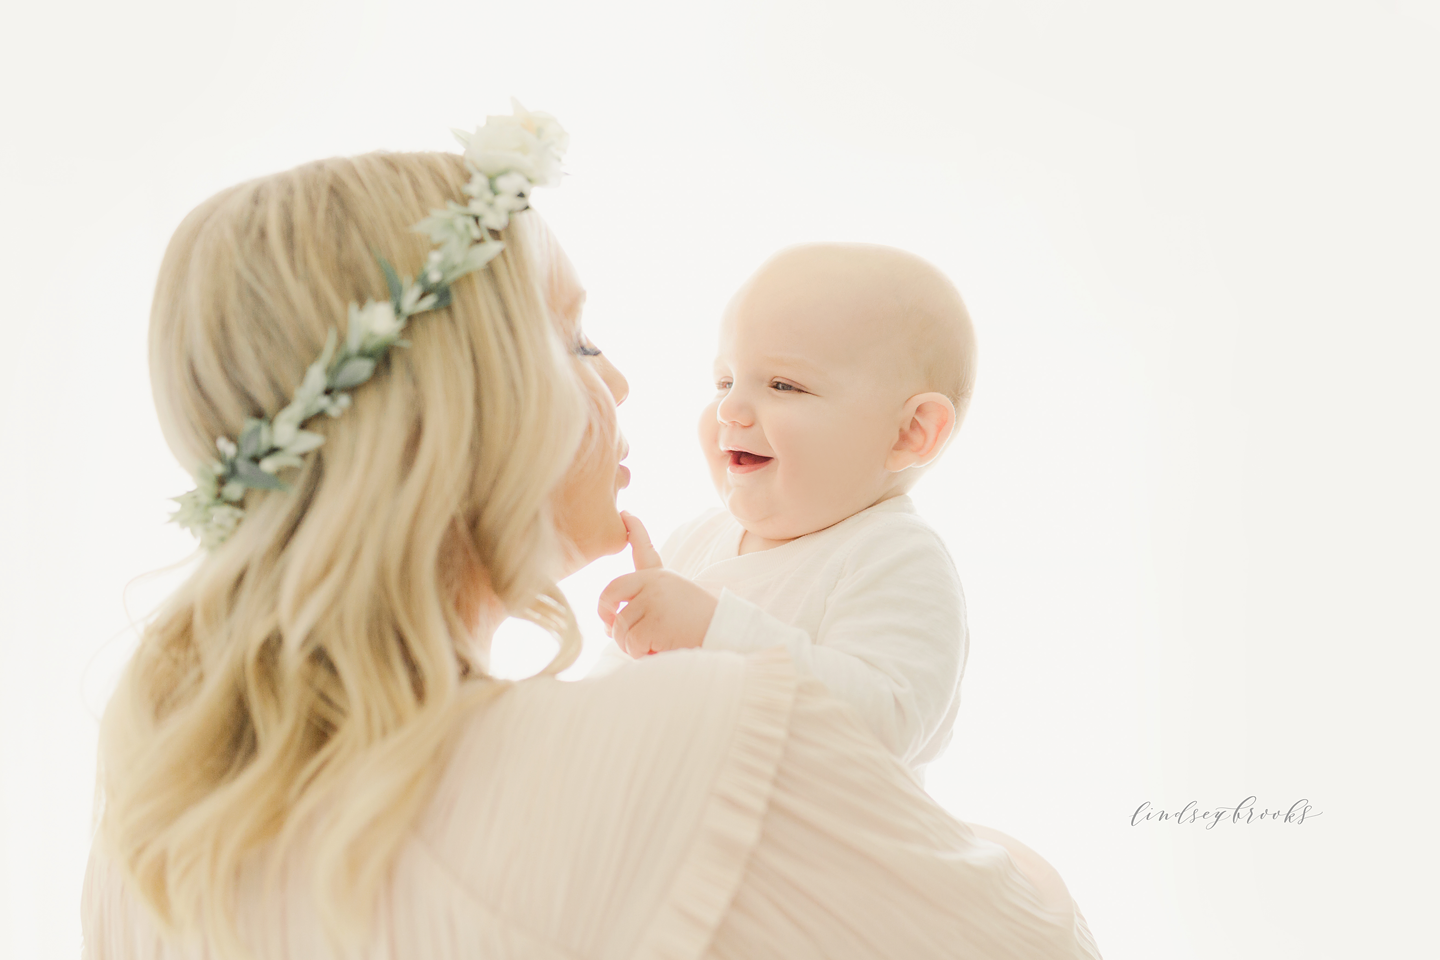 oklahoma-city-photographers-newborn-baby-motherhood-six-months-infant-child-family-photos-portraits-studio-simple-natural-light-6.png